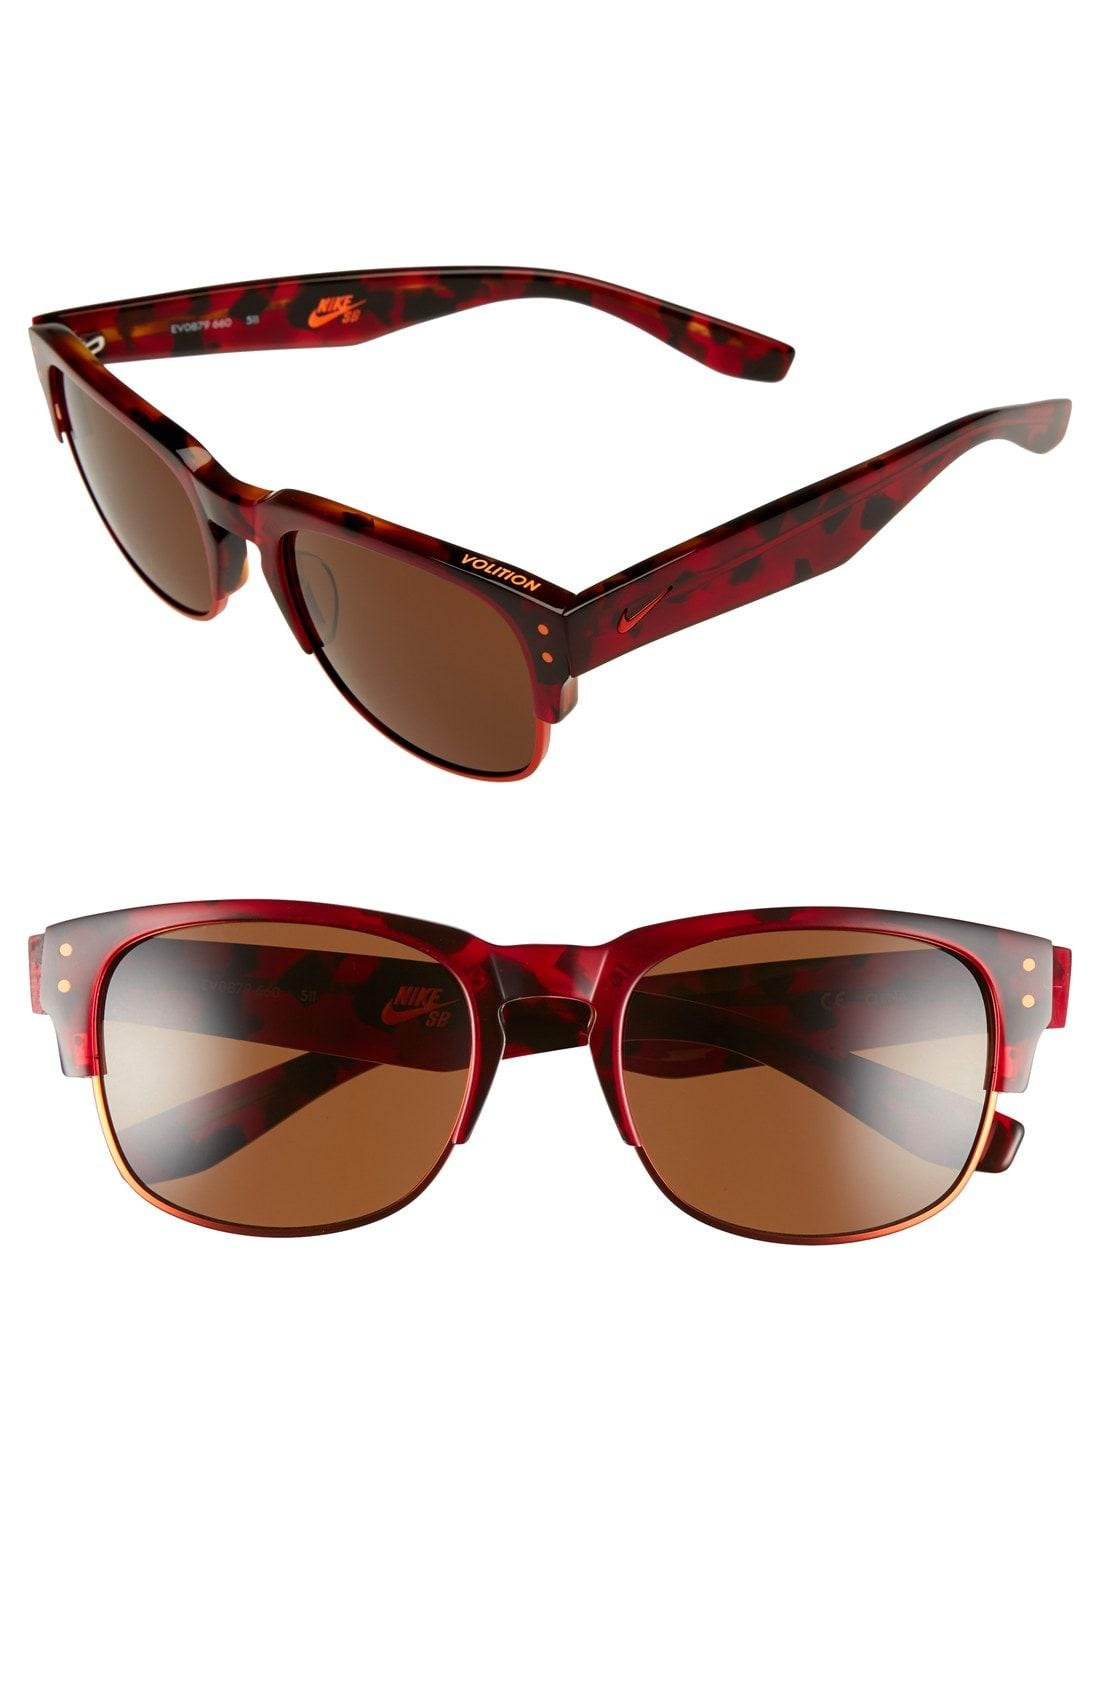 07dac58b1366 Lyst - Nike Volition 54mm Sunglasses in Red